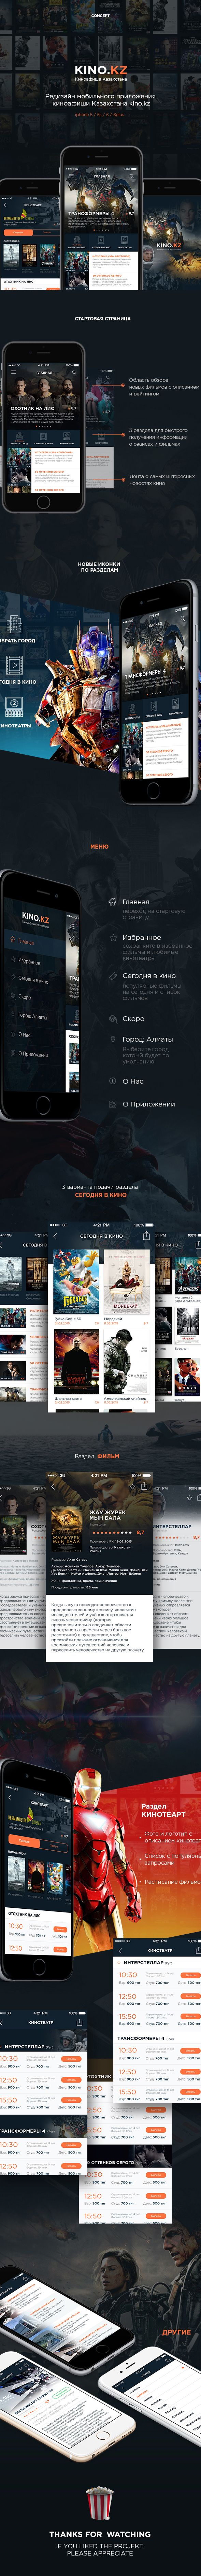 """Concept. Movie App Redesign for service """"kino.kz"""" on Behance"""